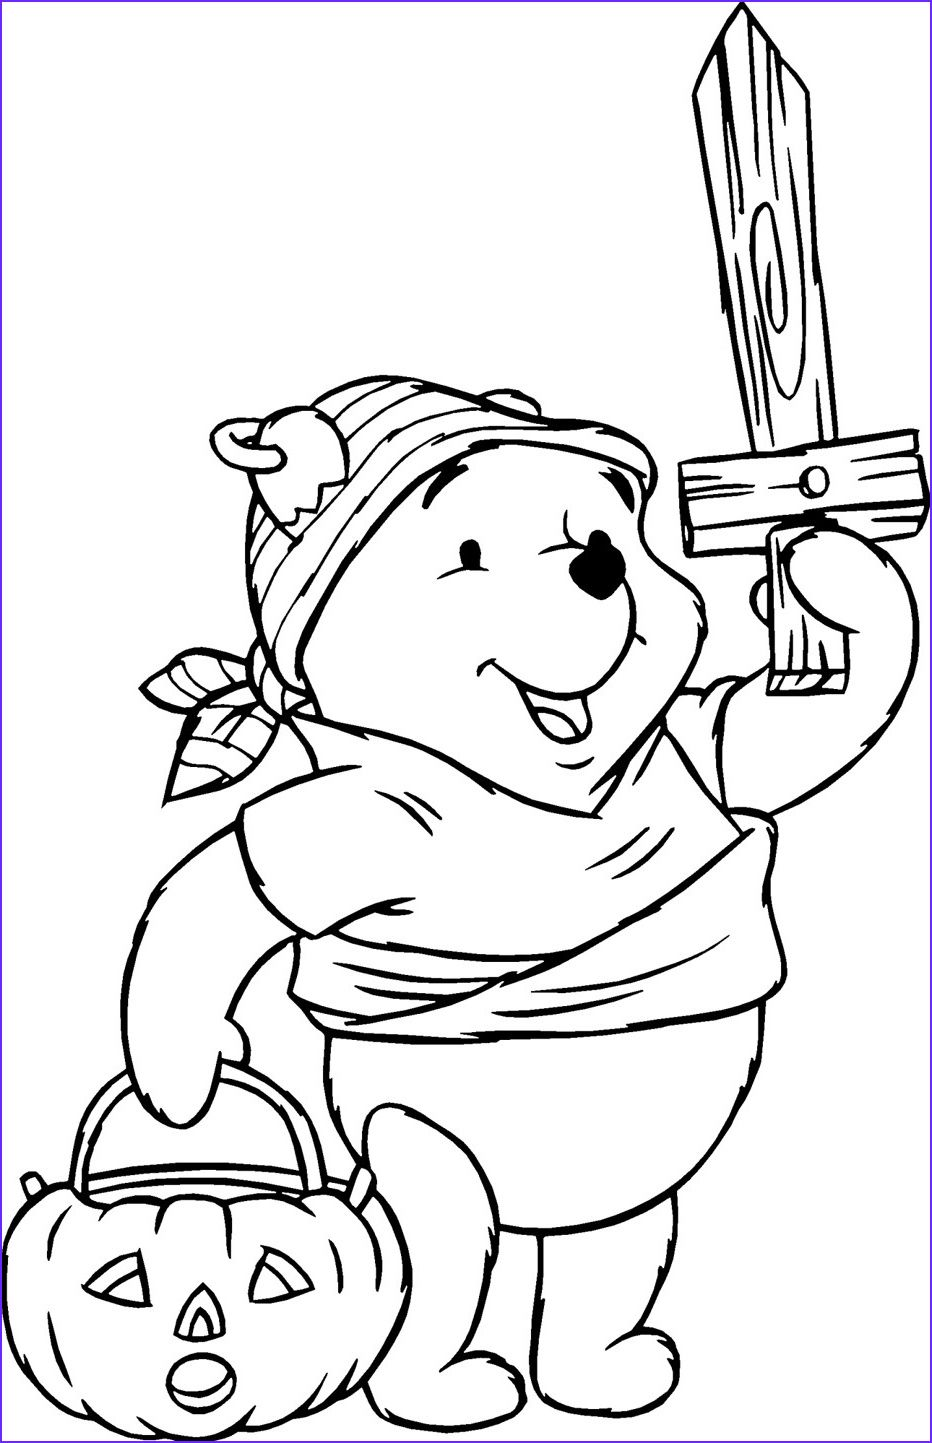 15 Awesome Free Coloring Pages for Kids Images in 2020 ...